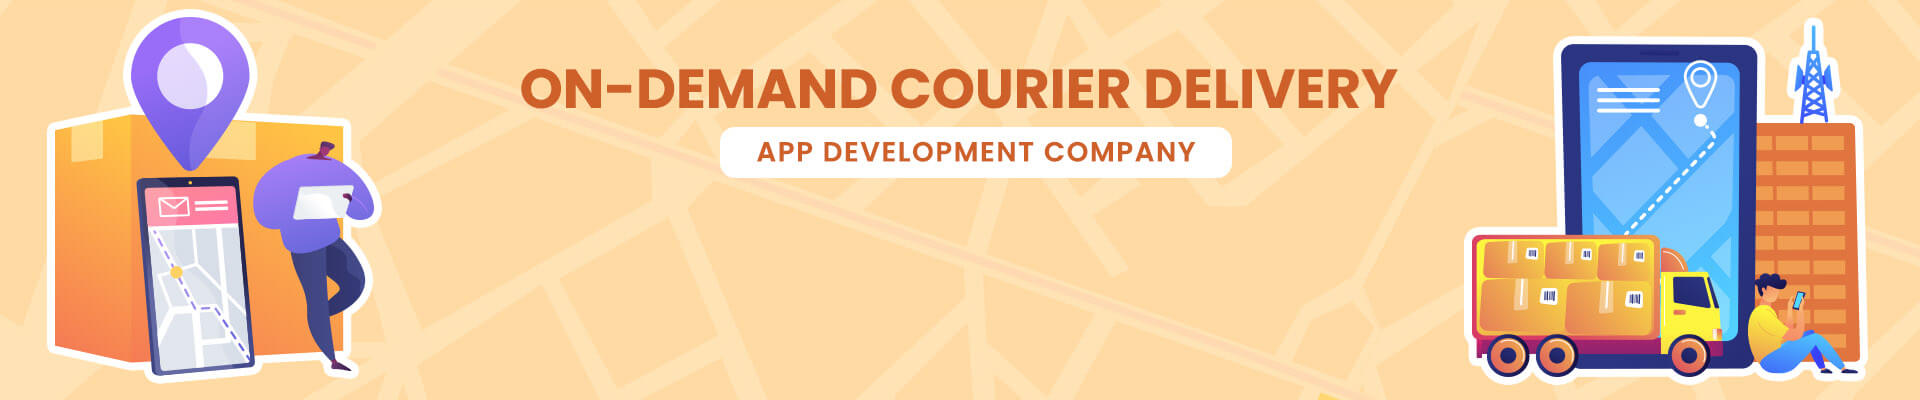 Best On-demand Courier Delivery App Development Company   Courier Delivery App Developers For Hire